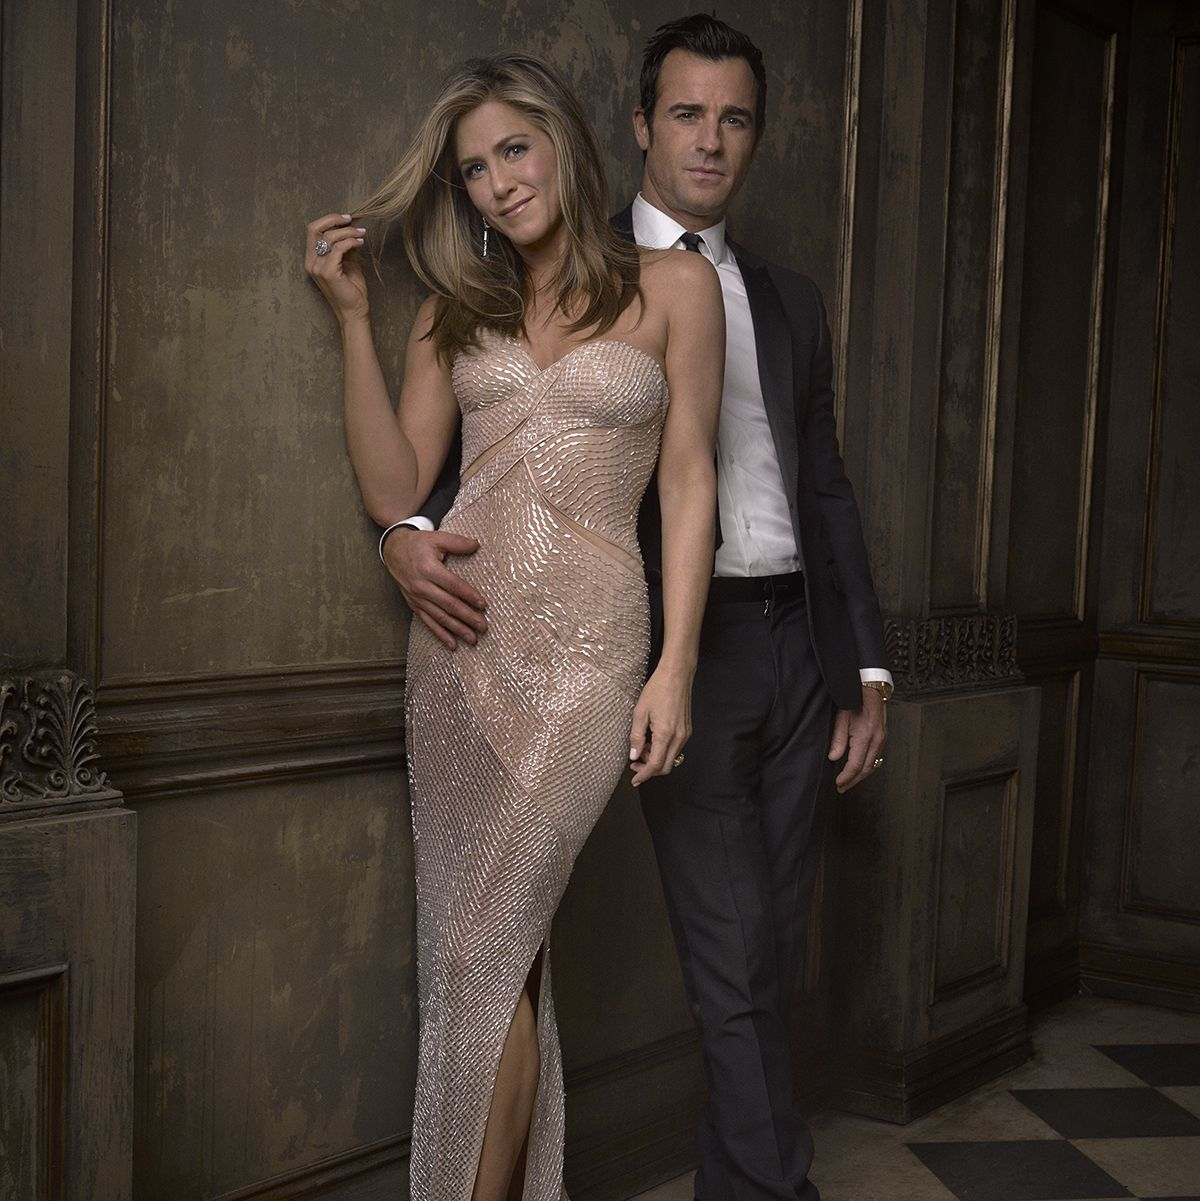 Mark Seliger's Instagram Portraits from the 2015 Oscar Party  #Oscars Jennifer Aniston and Justin Theroux